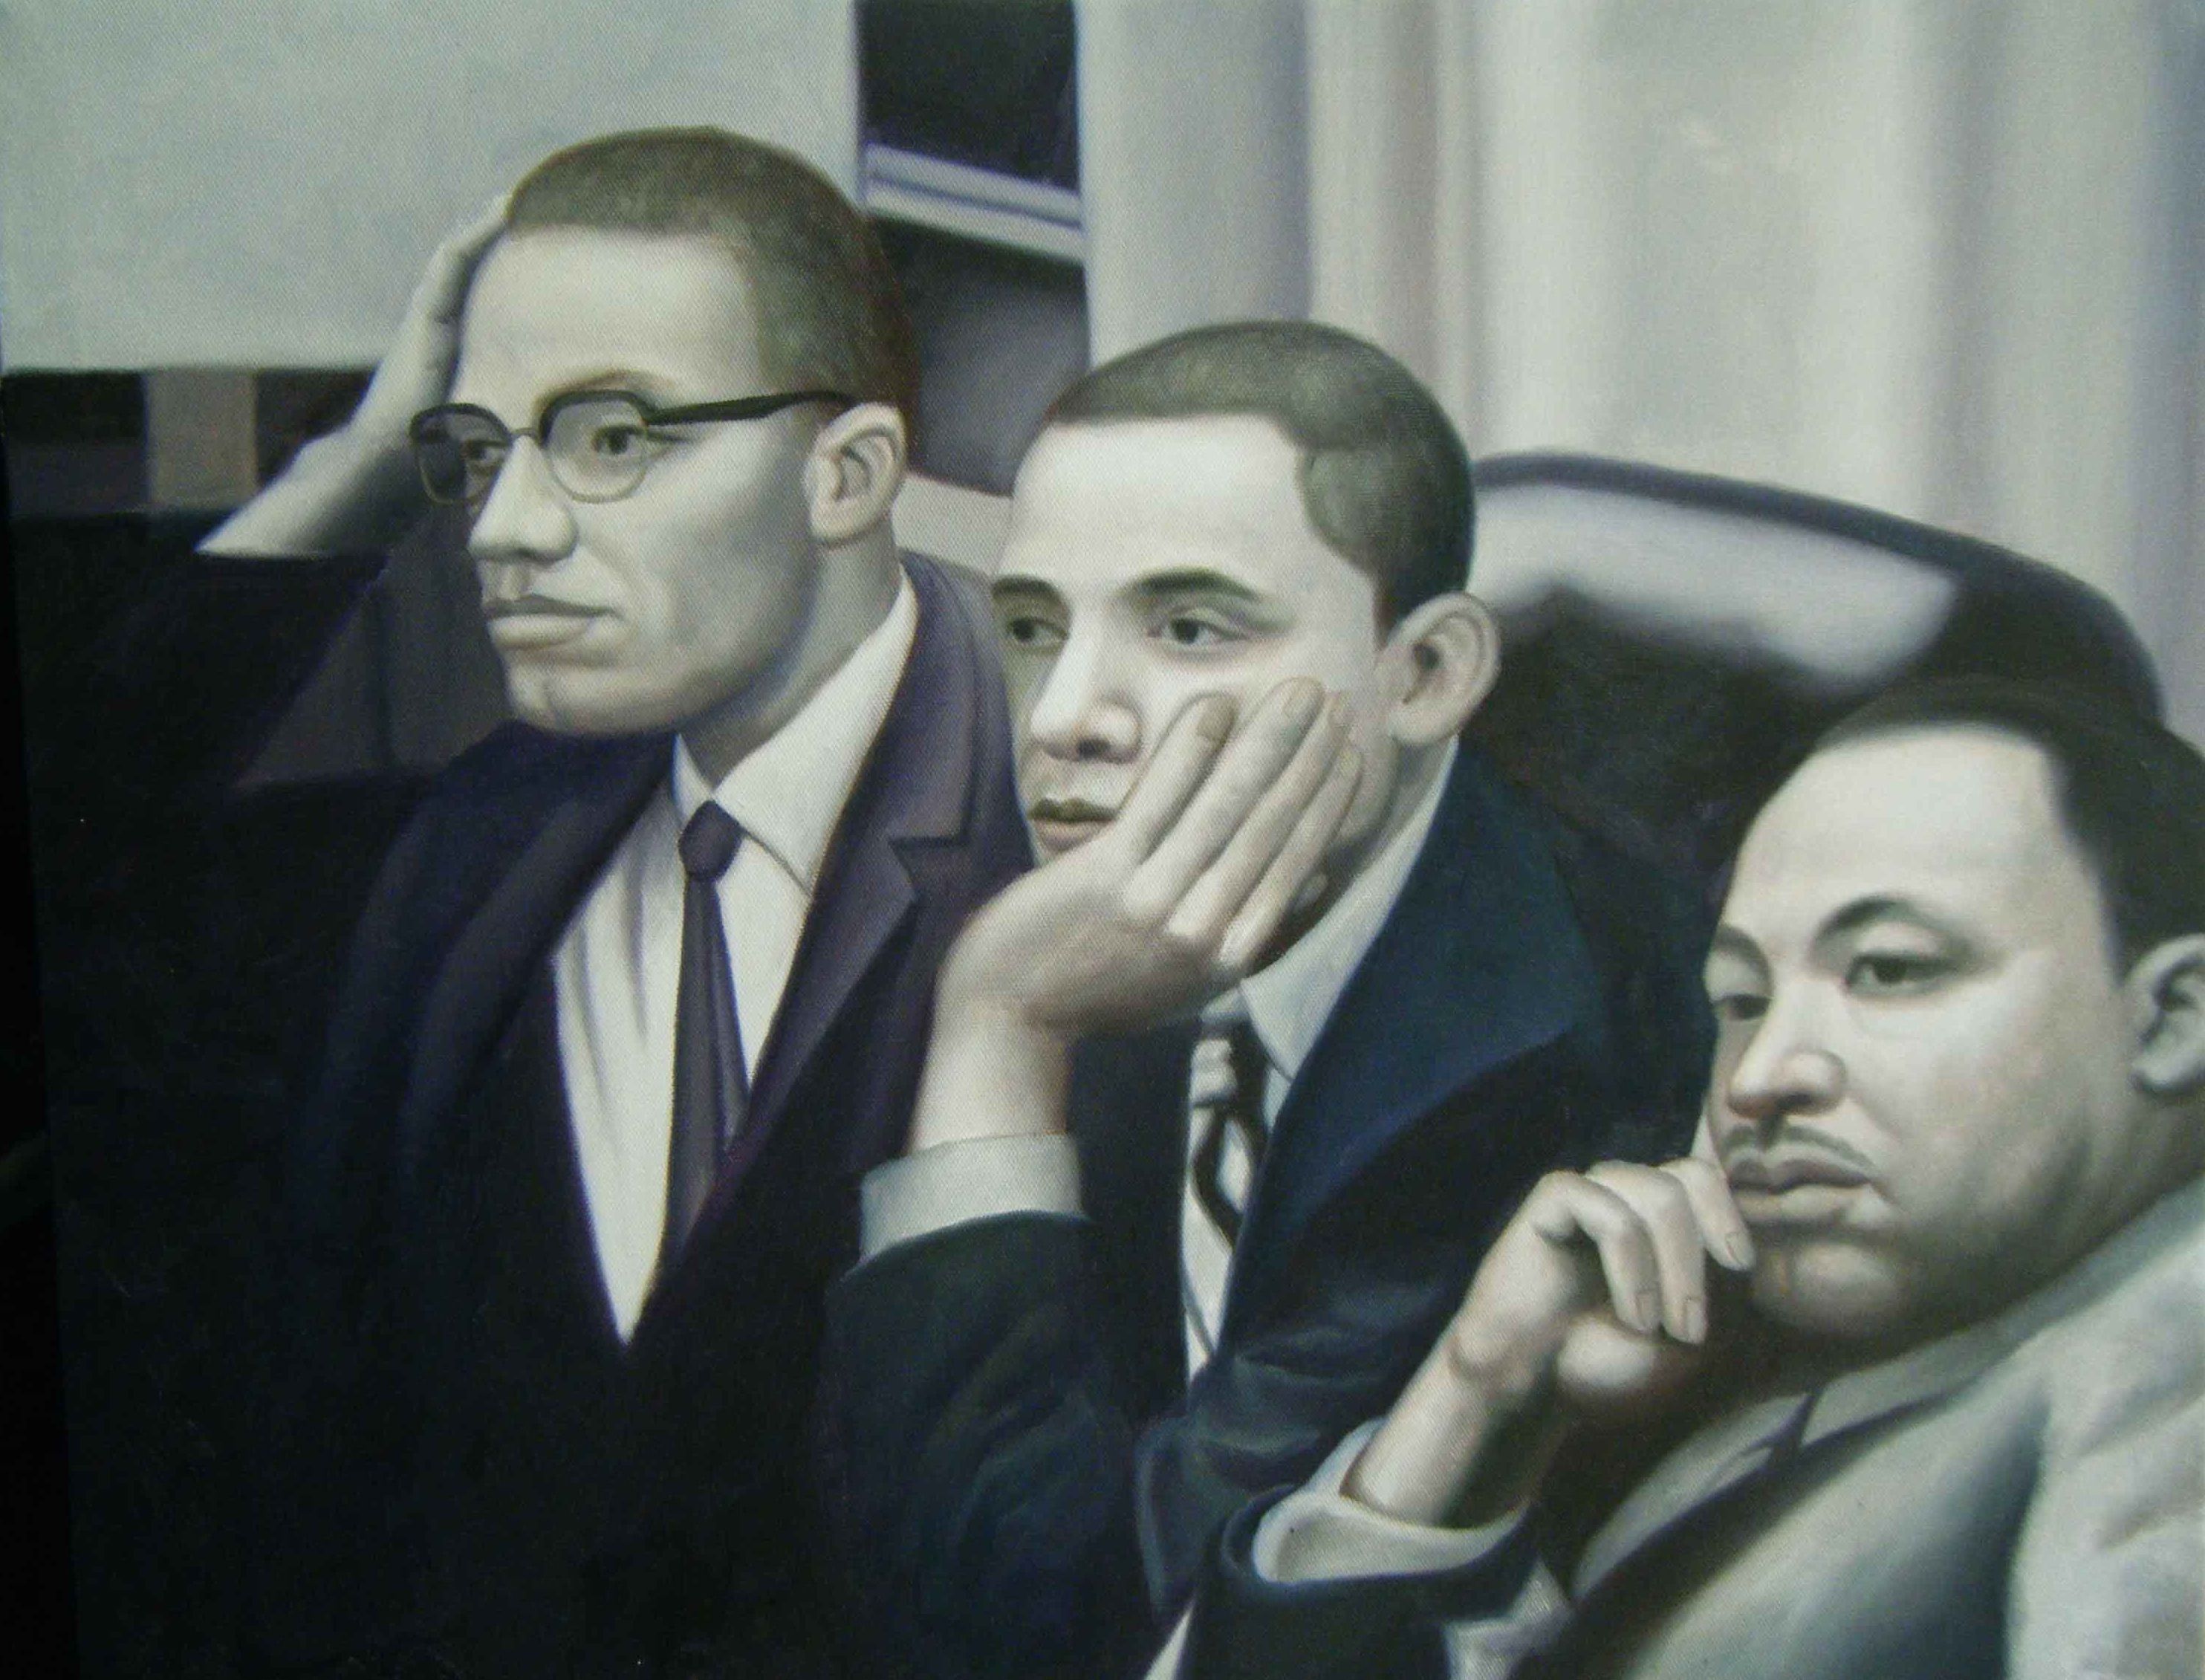 Martin luther king essay help Columbia University Malcolm X And Martin Luther King Debate